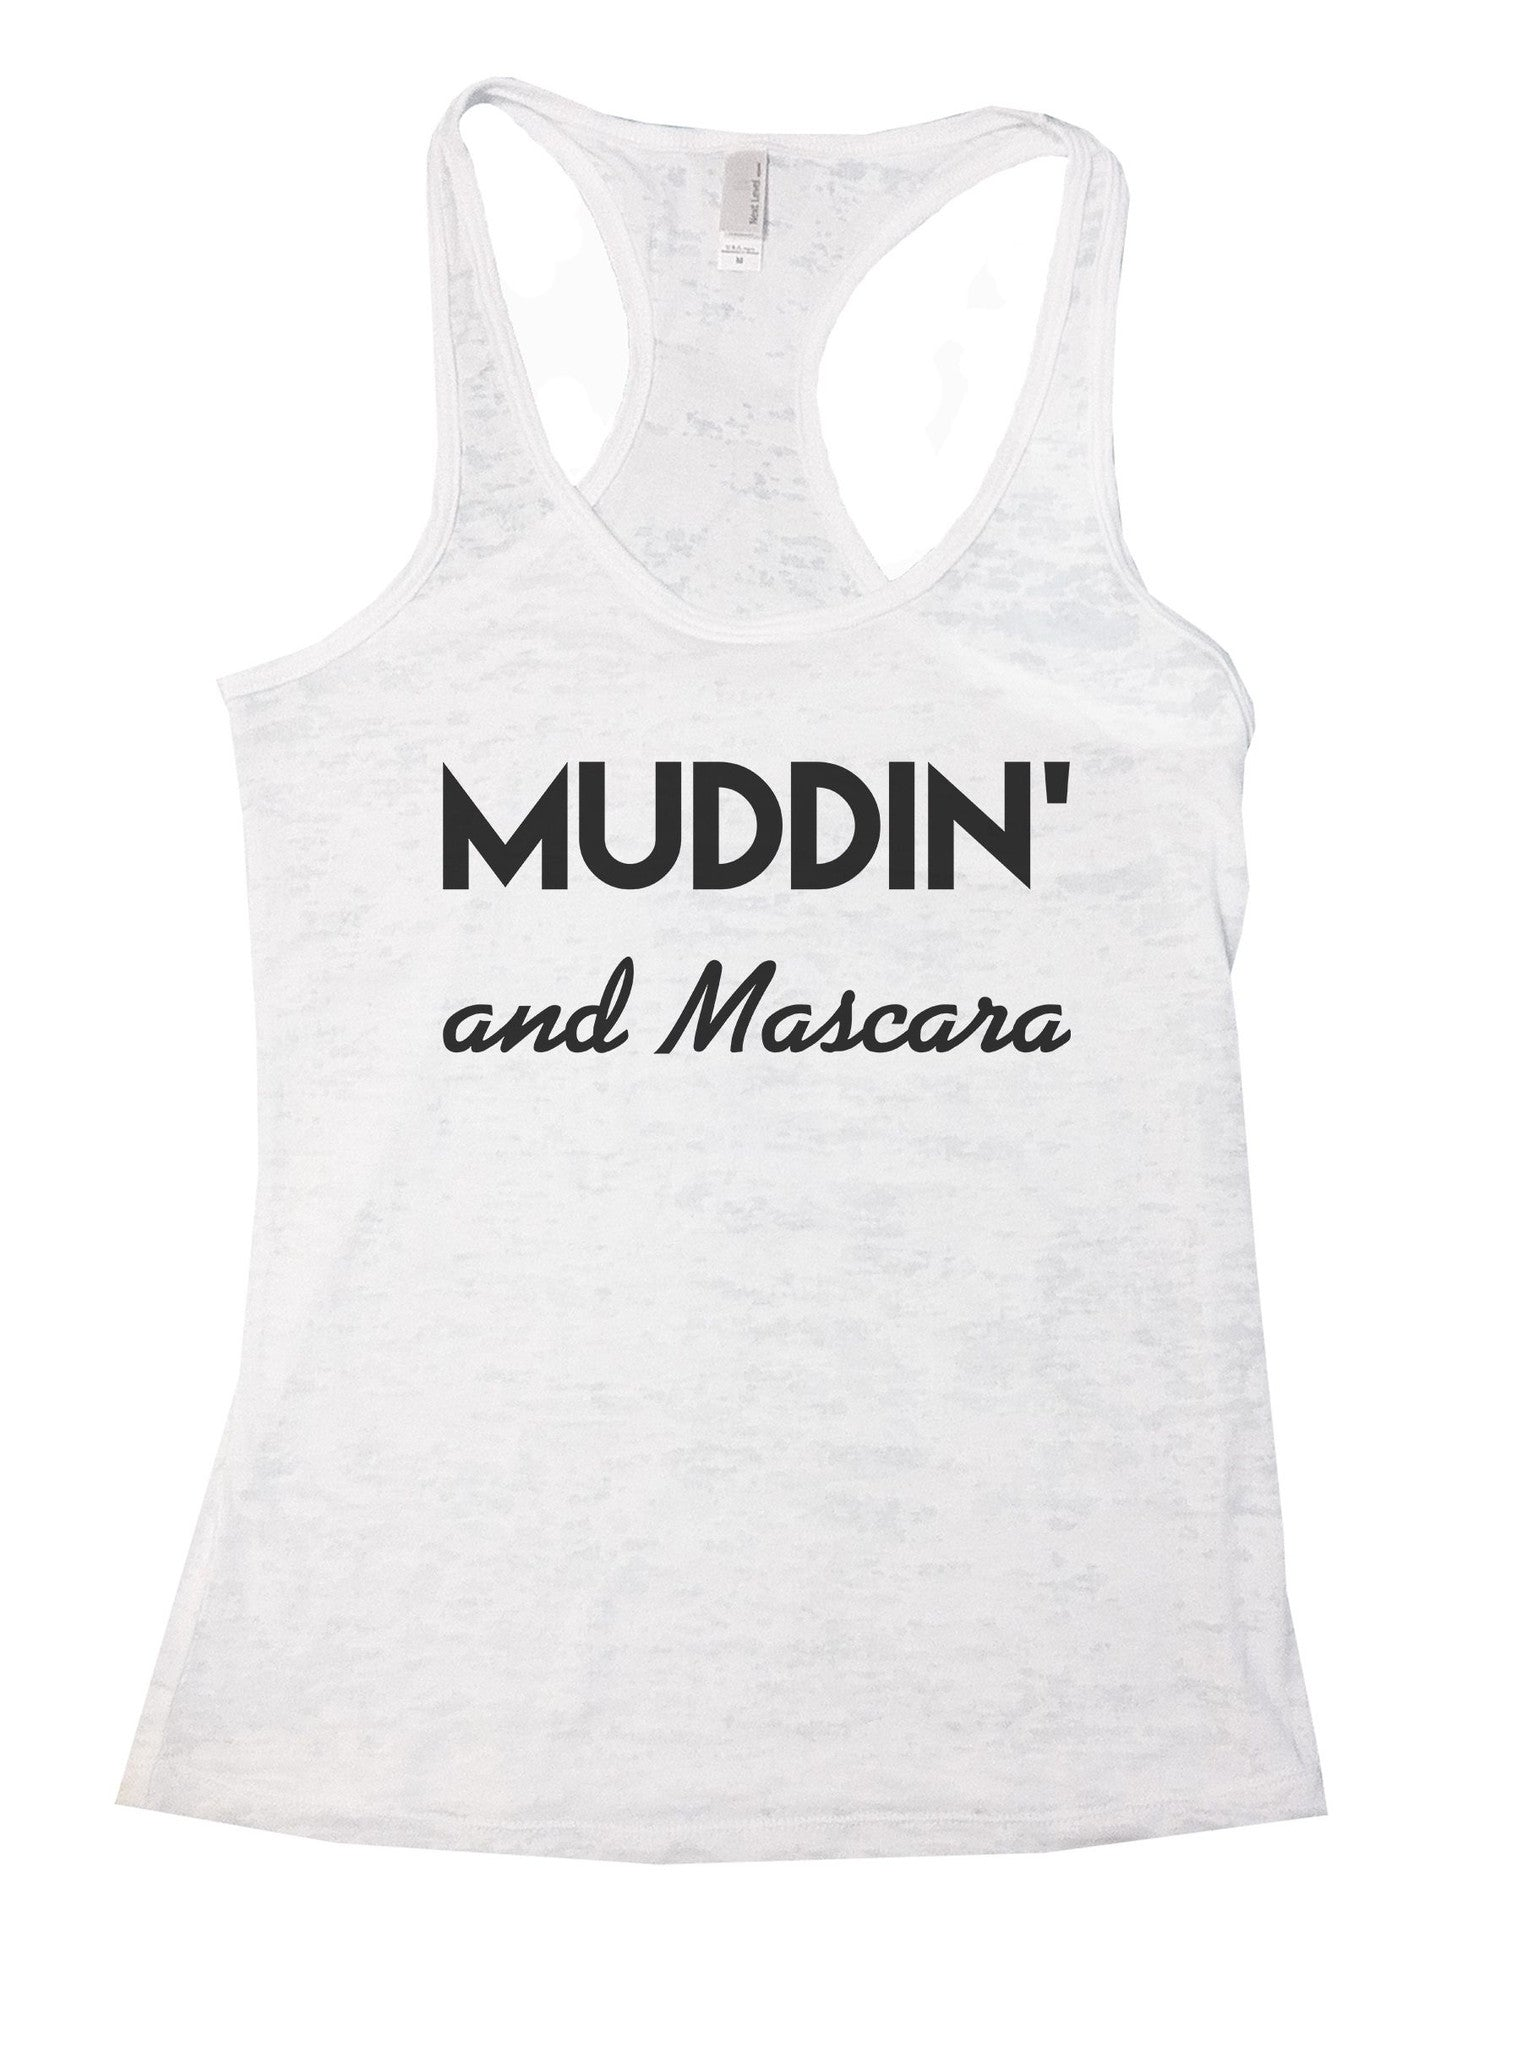 Muddin And Mascara Burnout Tank Top By BurnoutTankTops.com - 803 - Funny Shirts Tank Tops Burnouts and Triblends  - 5